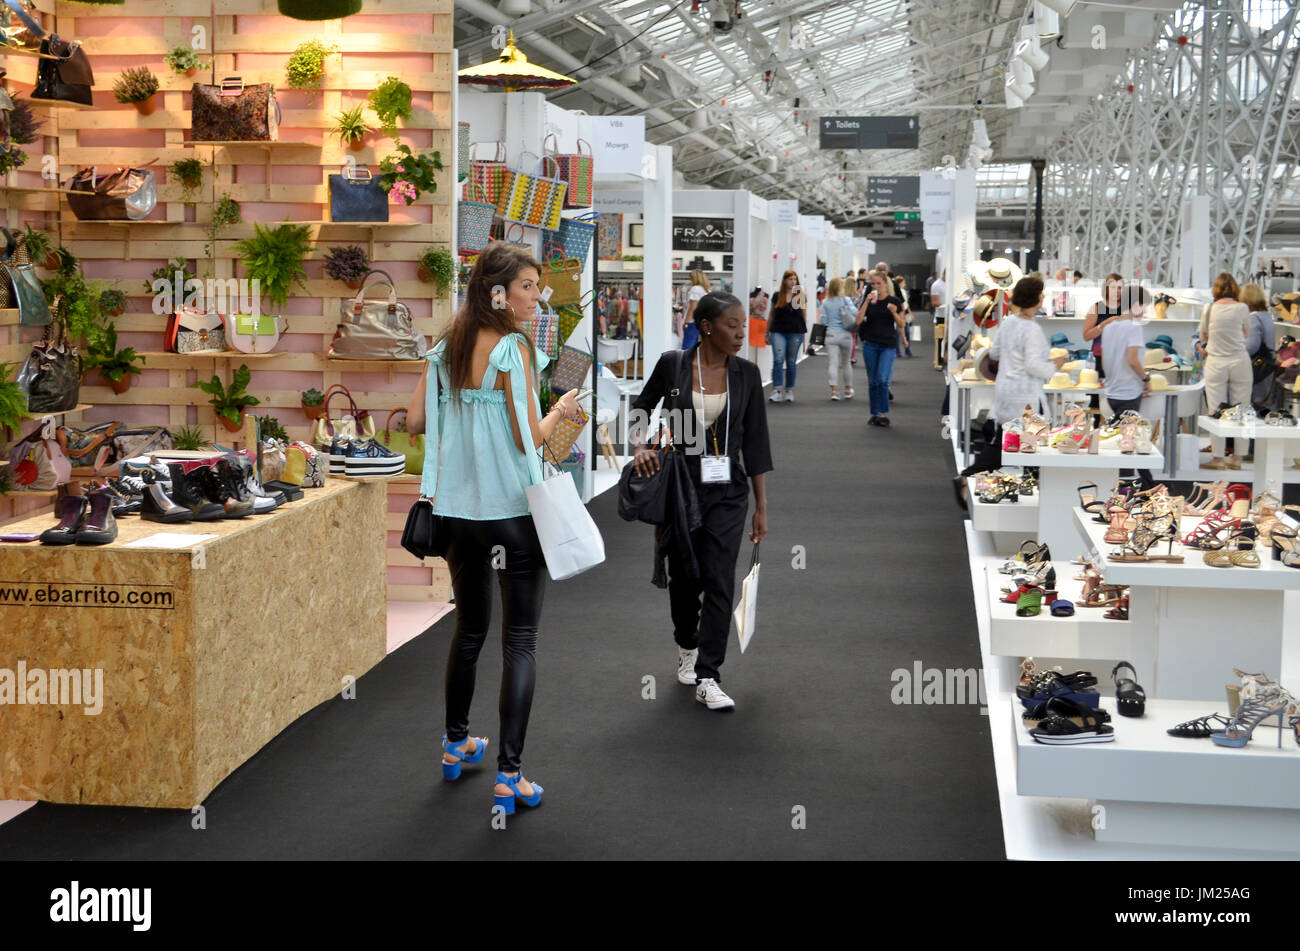 Trade Stands Olympia : Fashion buyers browse the footwear stands at pure london olympia